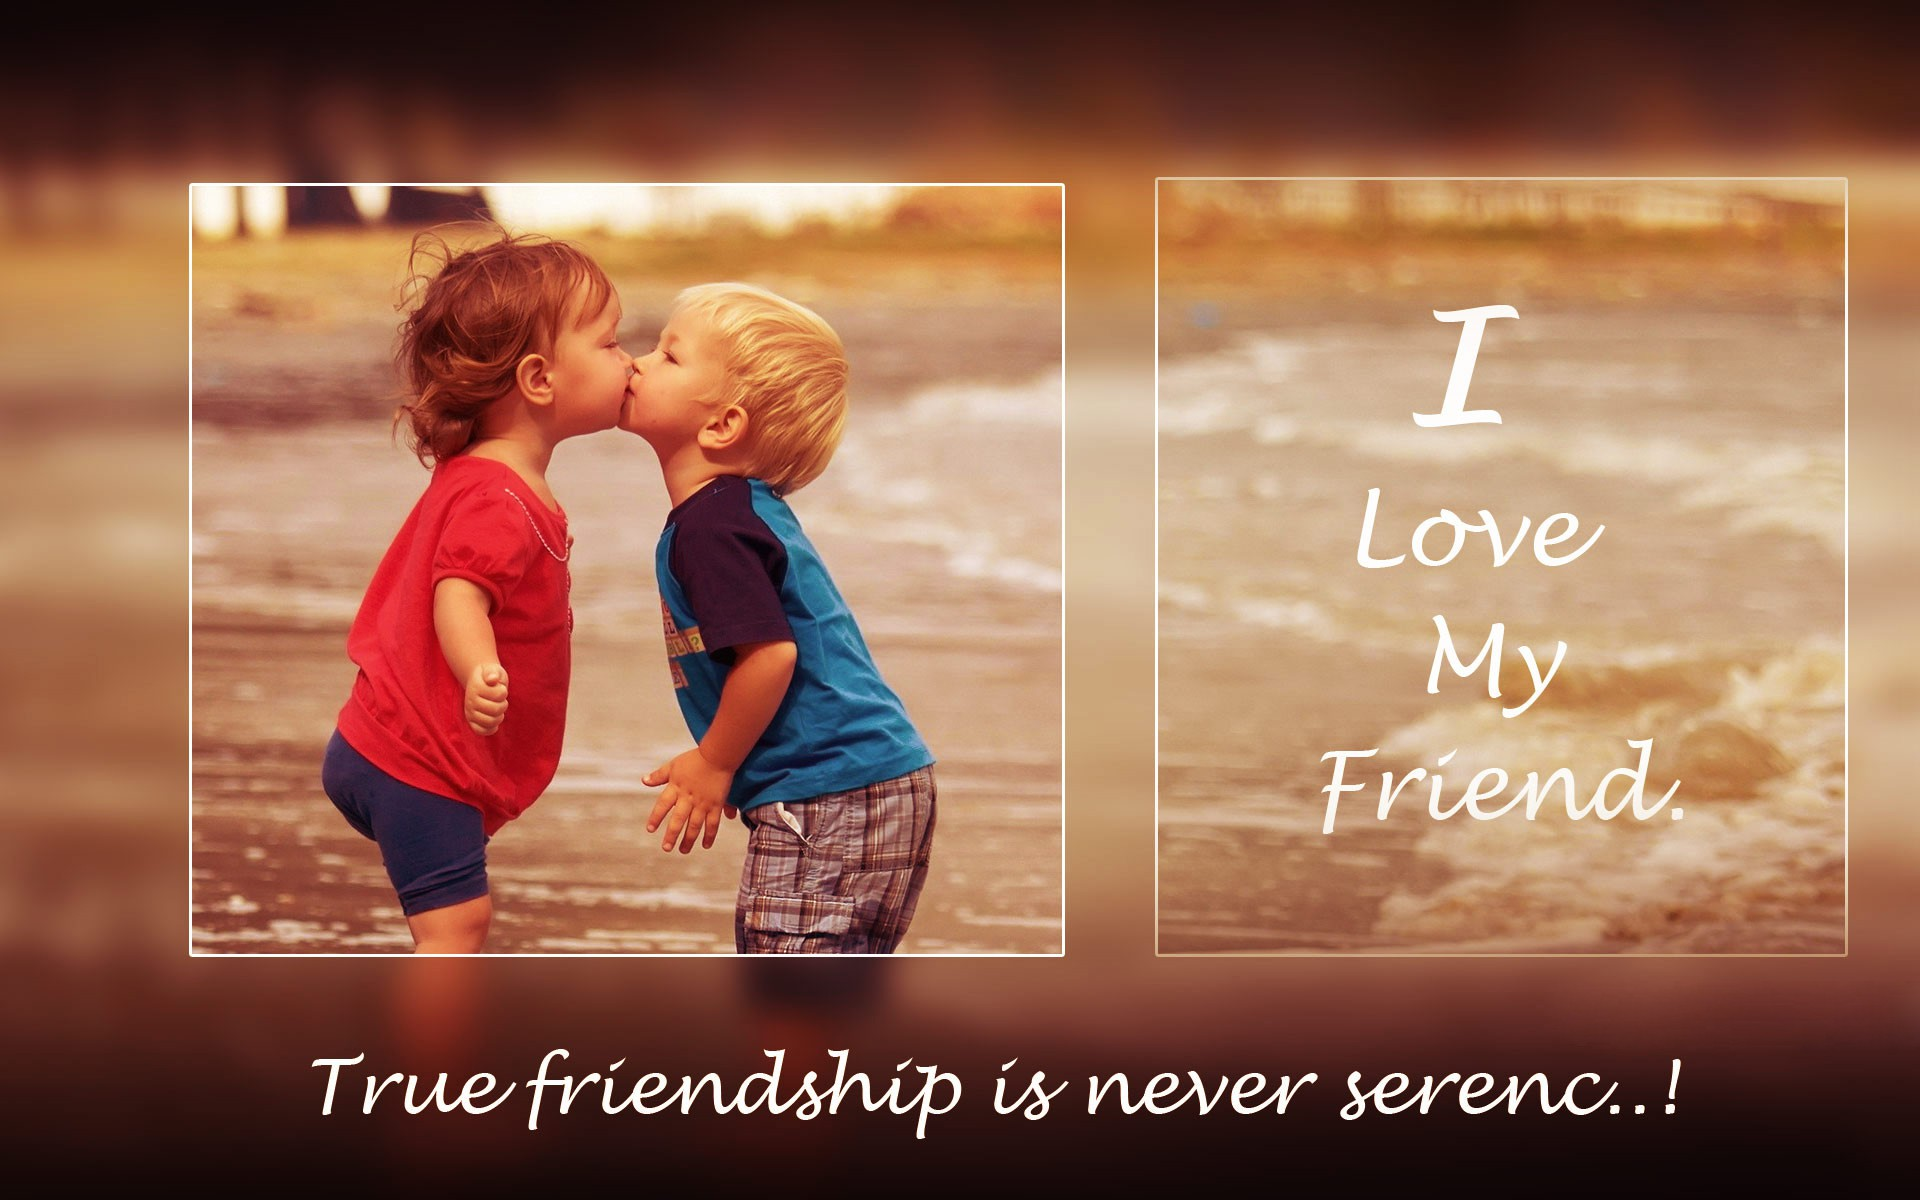 Wallpaper download love and friendship - Cute Child Friend Love Hd Wallpapers New Hd Wallpapers